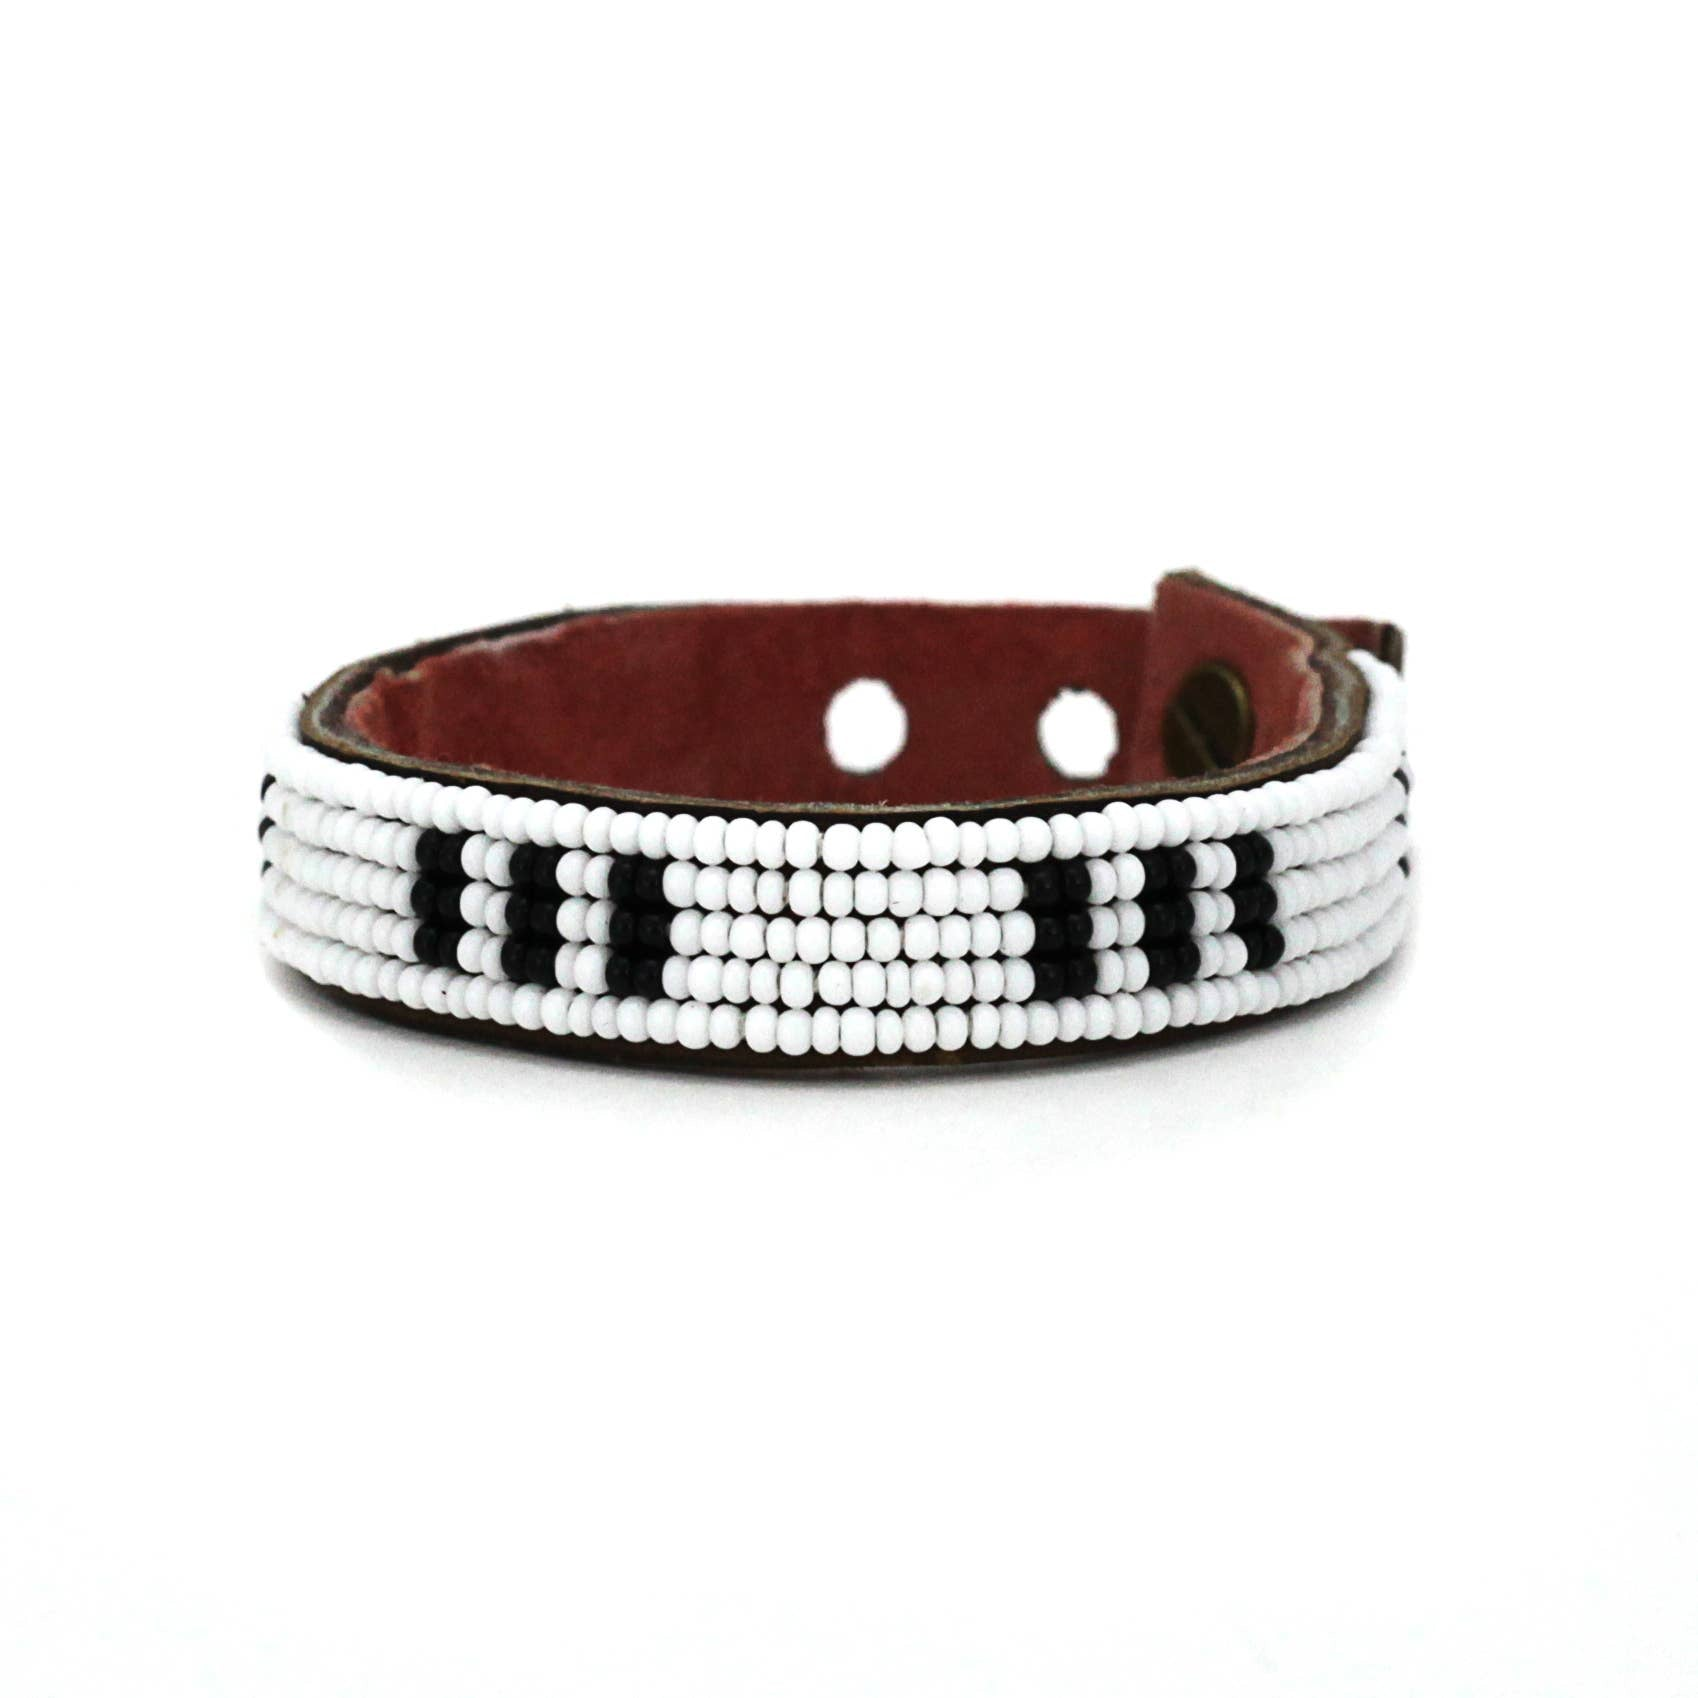 Black Stitches Leather Cuff